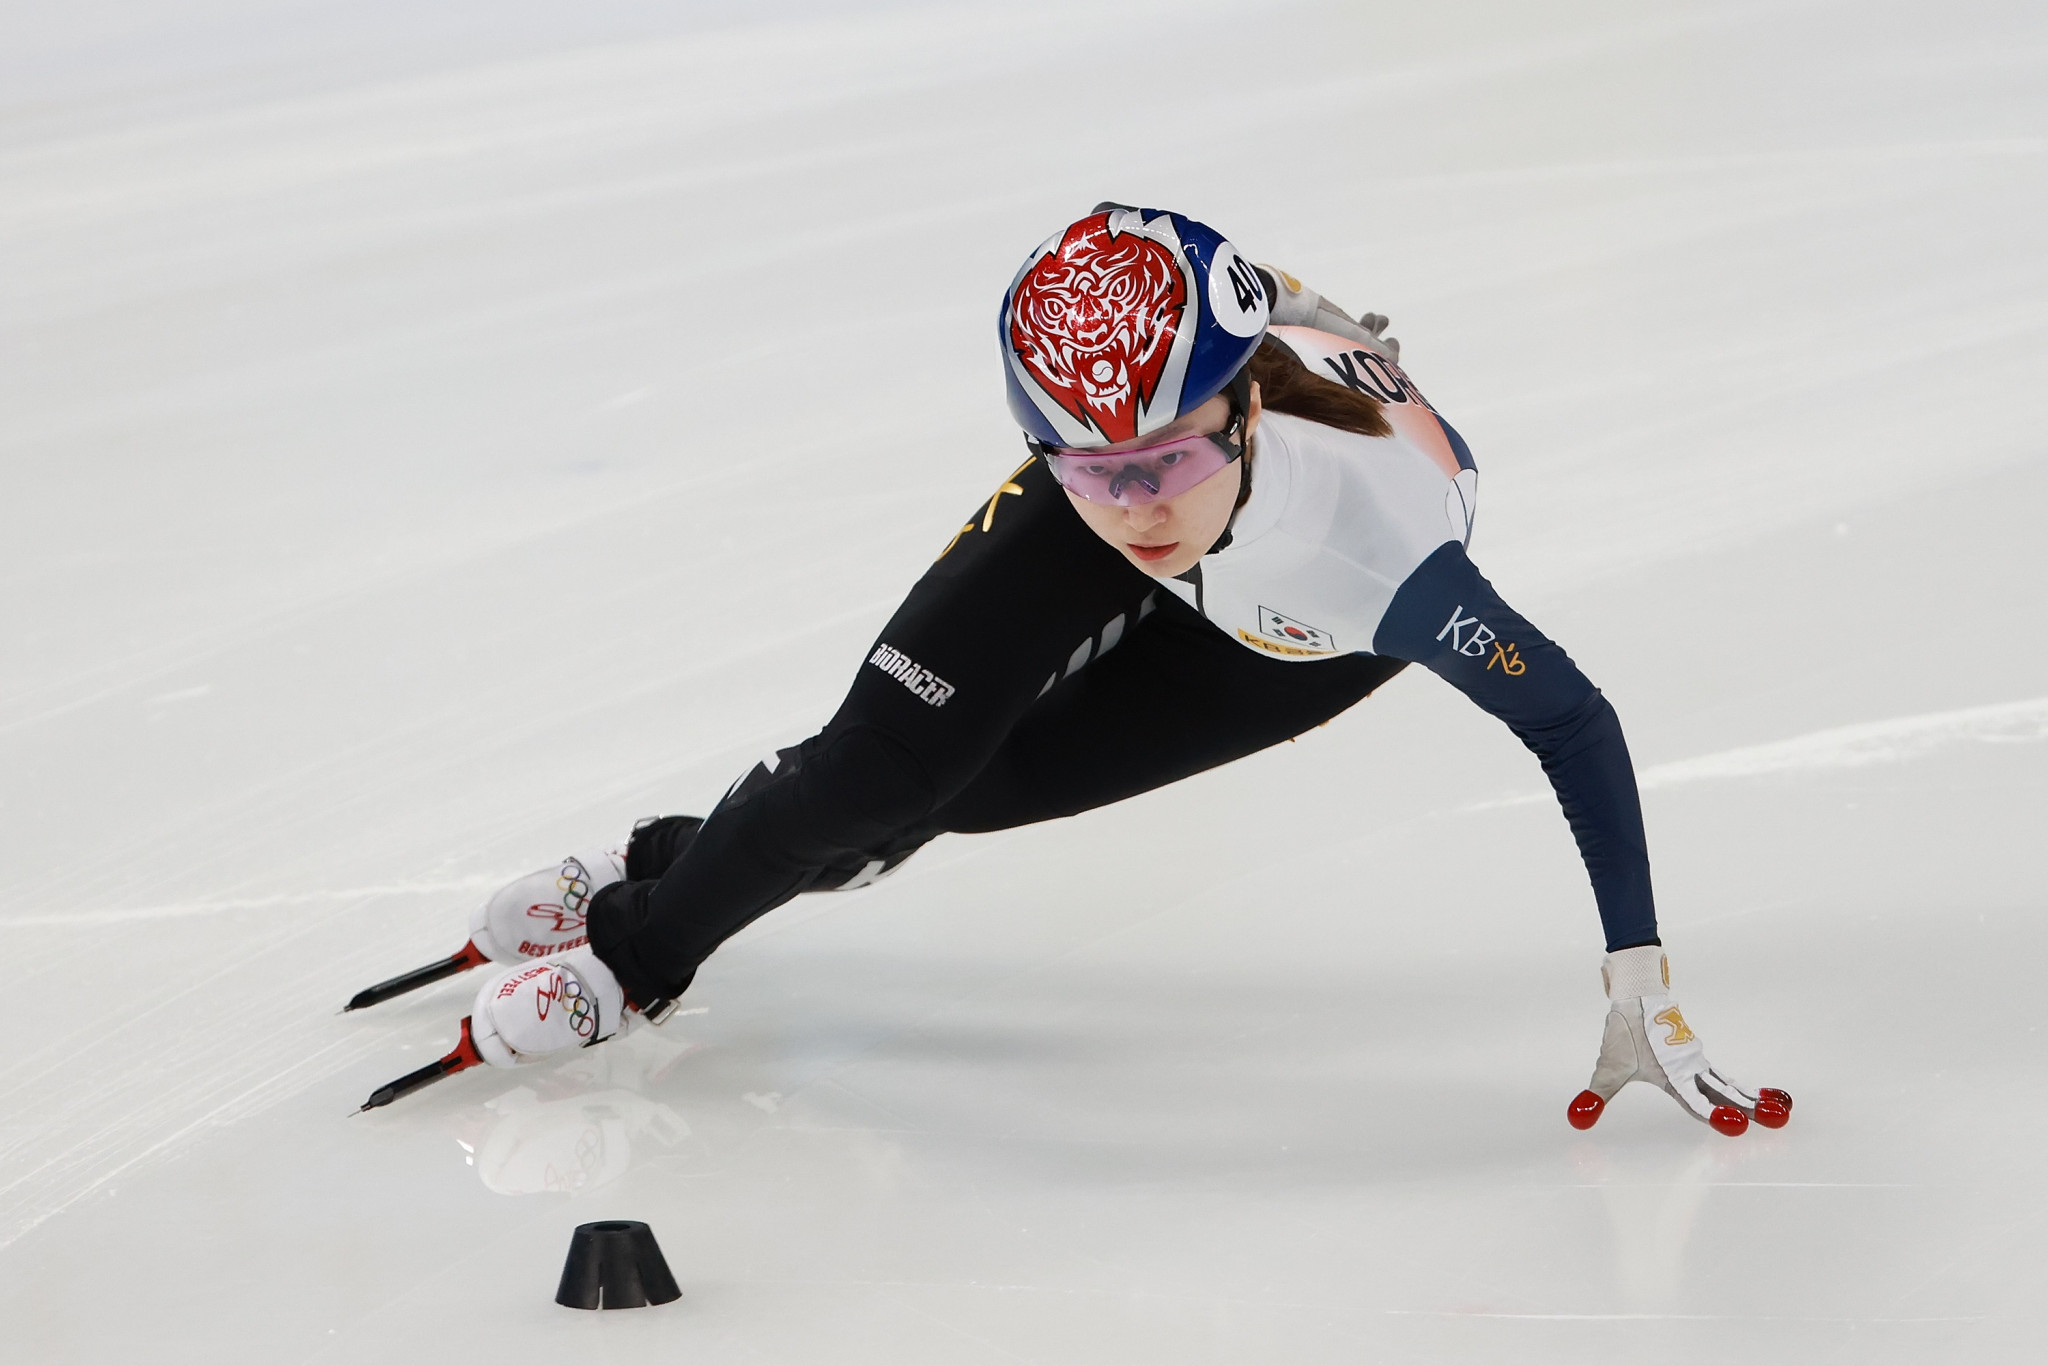 Short Track Speed Skating World Cup season to remain in Asia with Nagoya leg